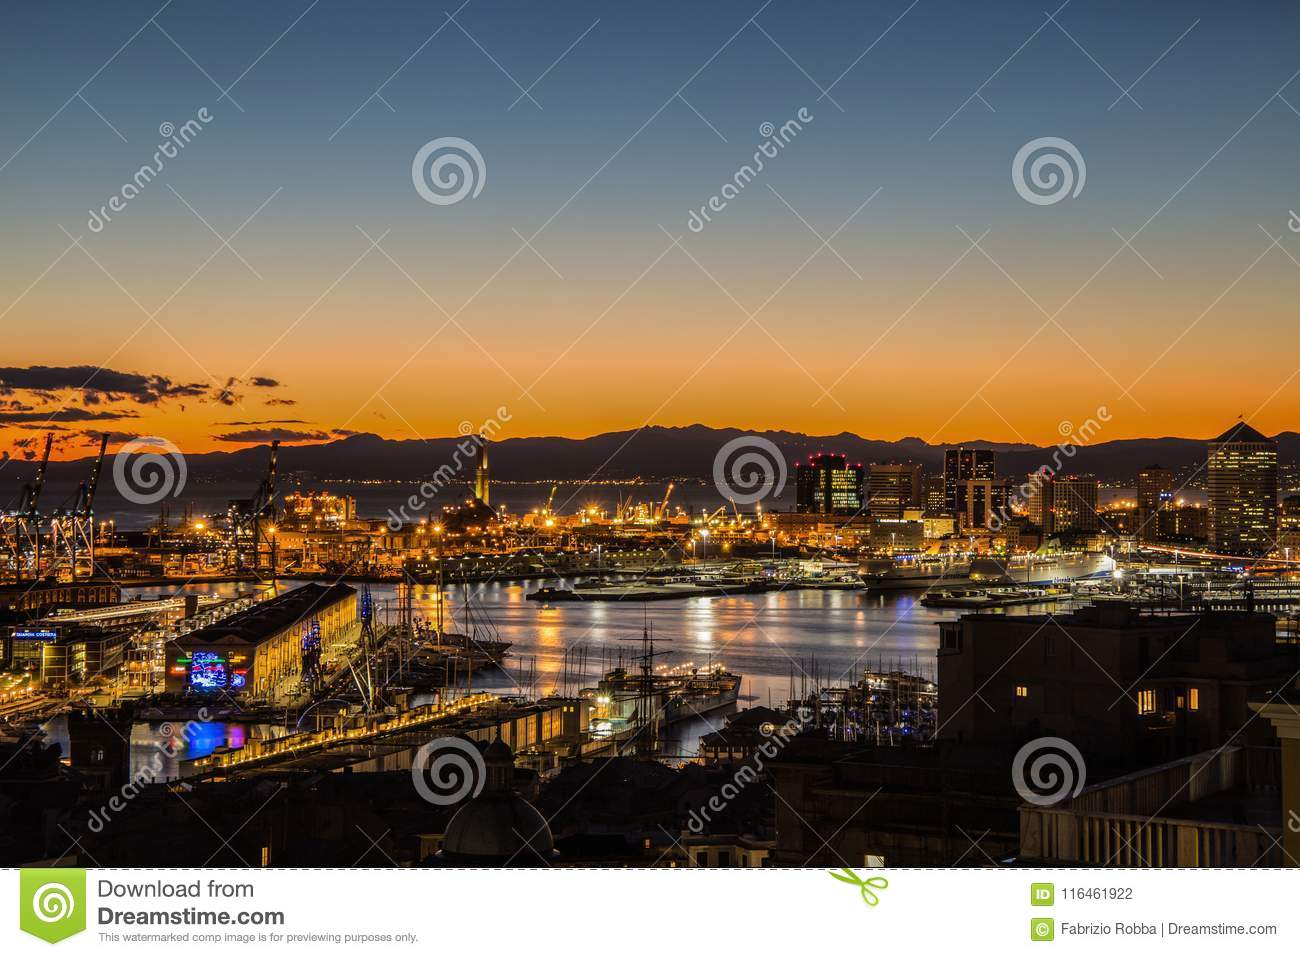 Sunset view of the city of Genoa, Italy/ Genoa landscape/ Genoa Skyline/ city landscape/ aereal view/ light/ city light/ orange/ s